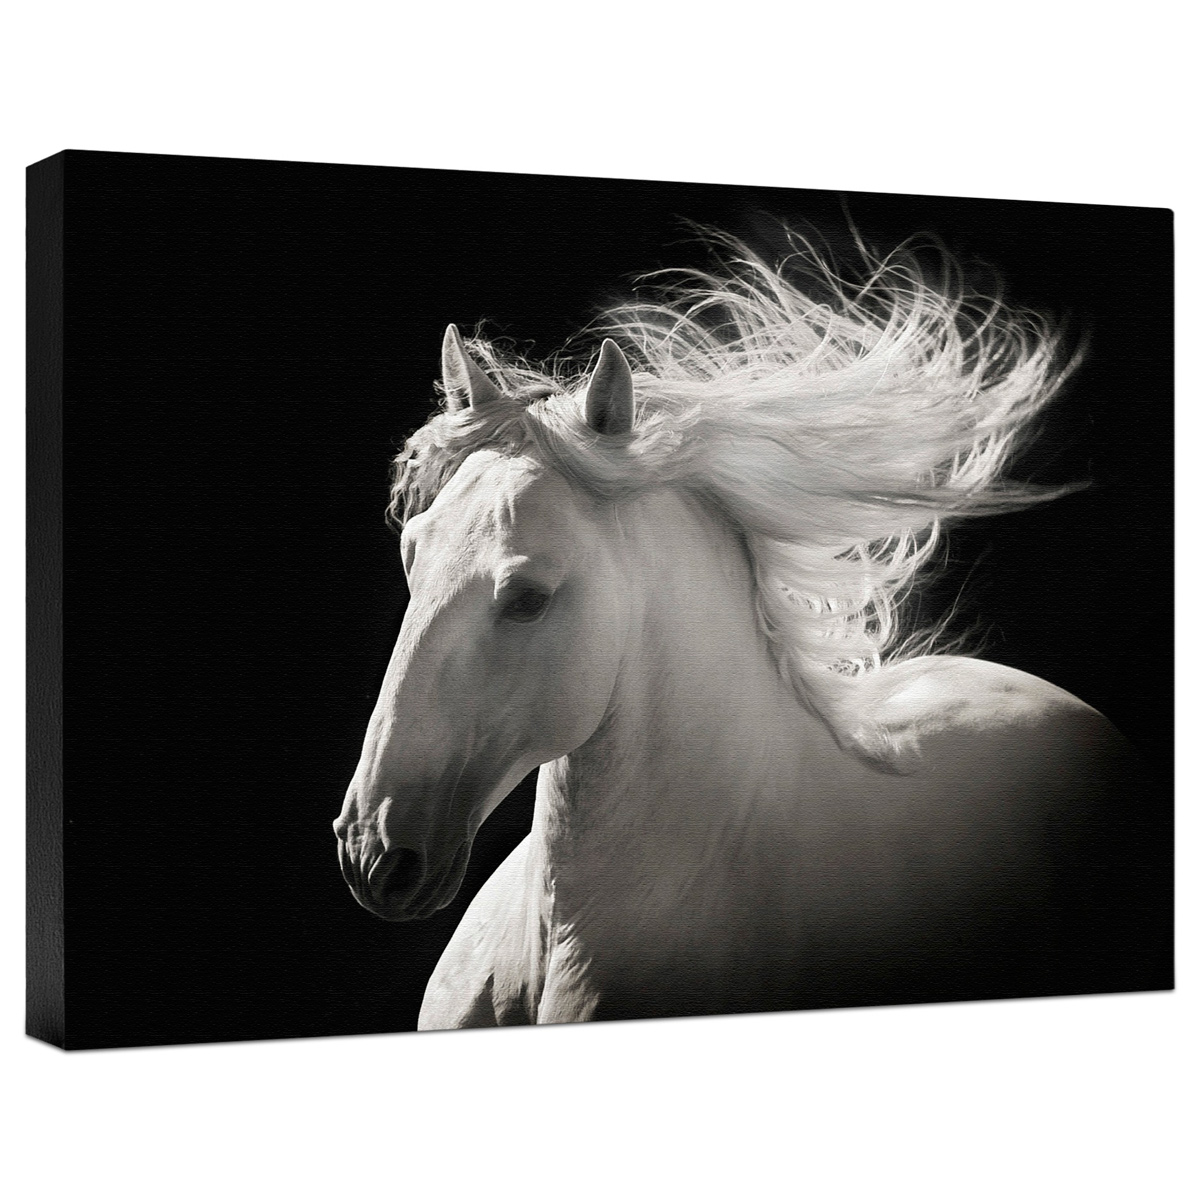 Gray Ghost Gallery Wrapped Canvas